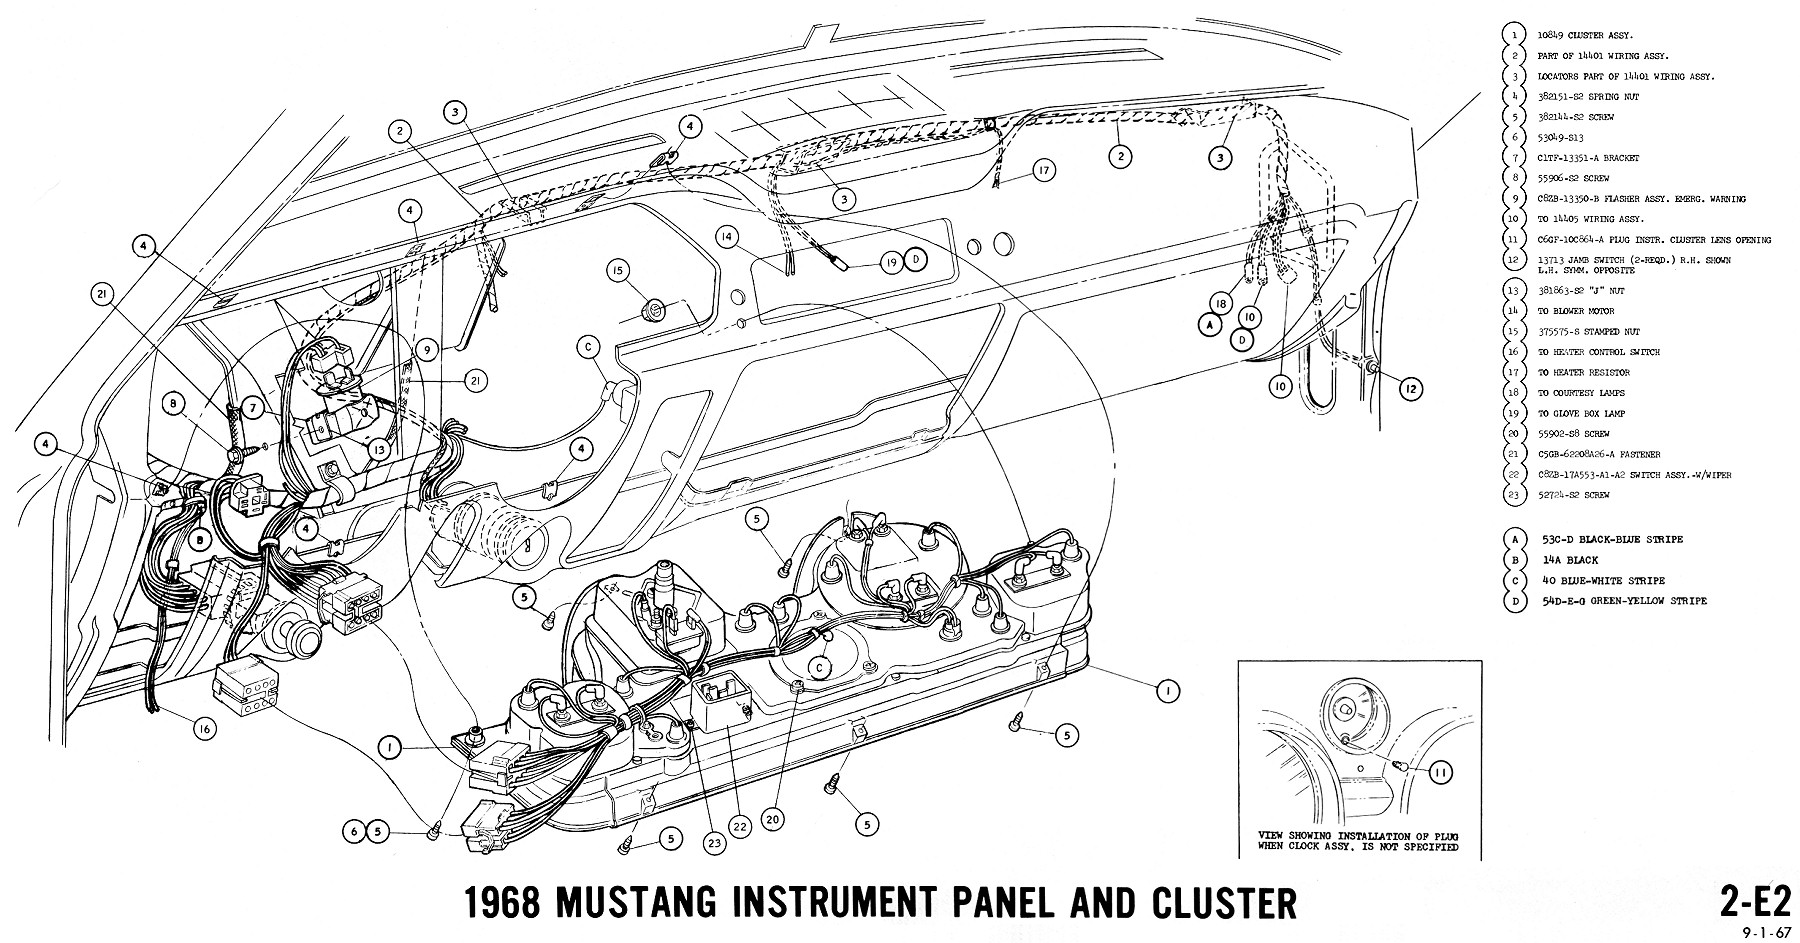 small resolution of 1968 mustang wiring diagram wiring diagram1968 mustang wiring diagrams evolving softwareinstrument cluster e2 u2013